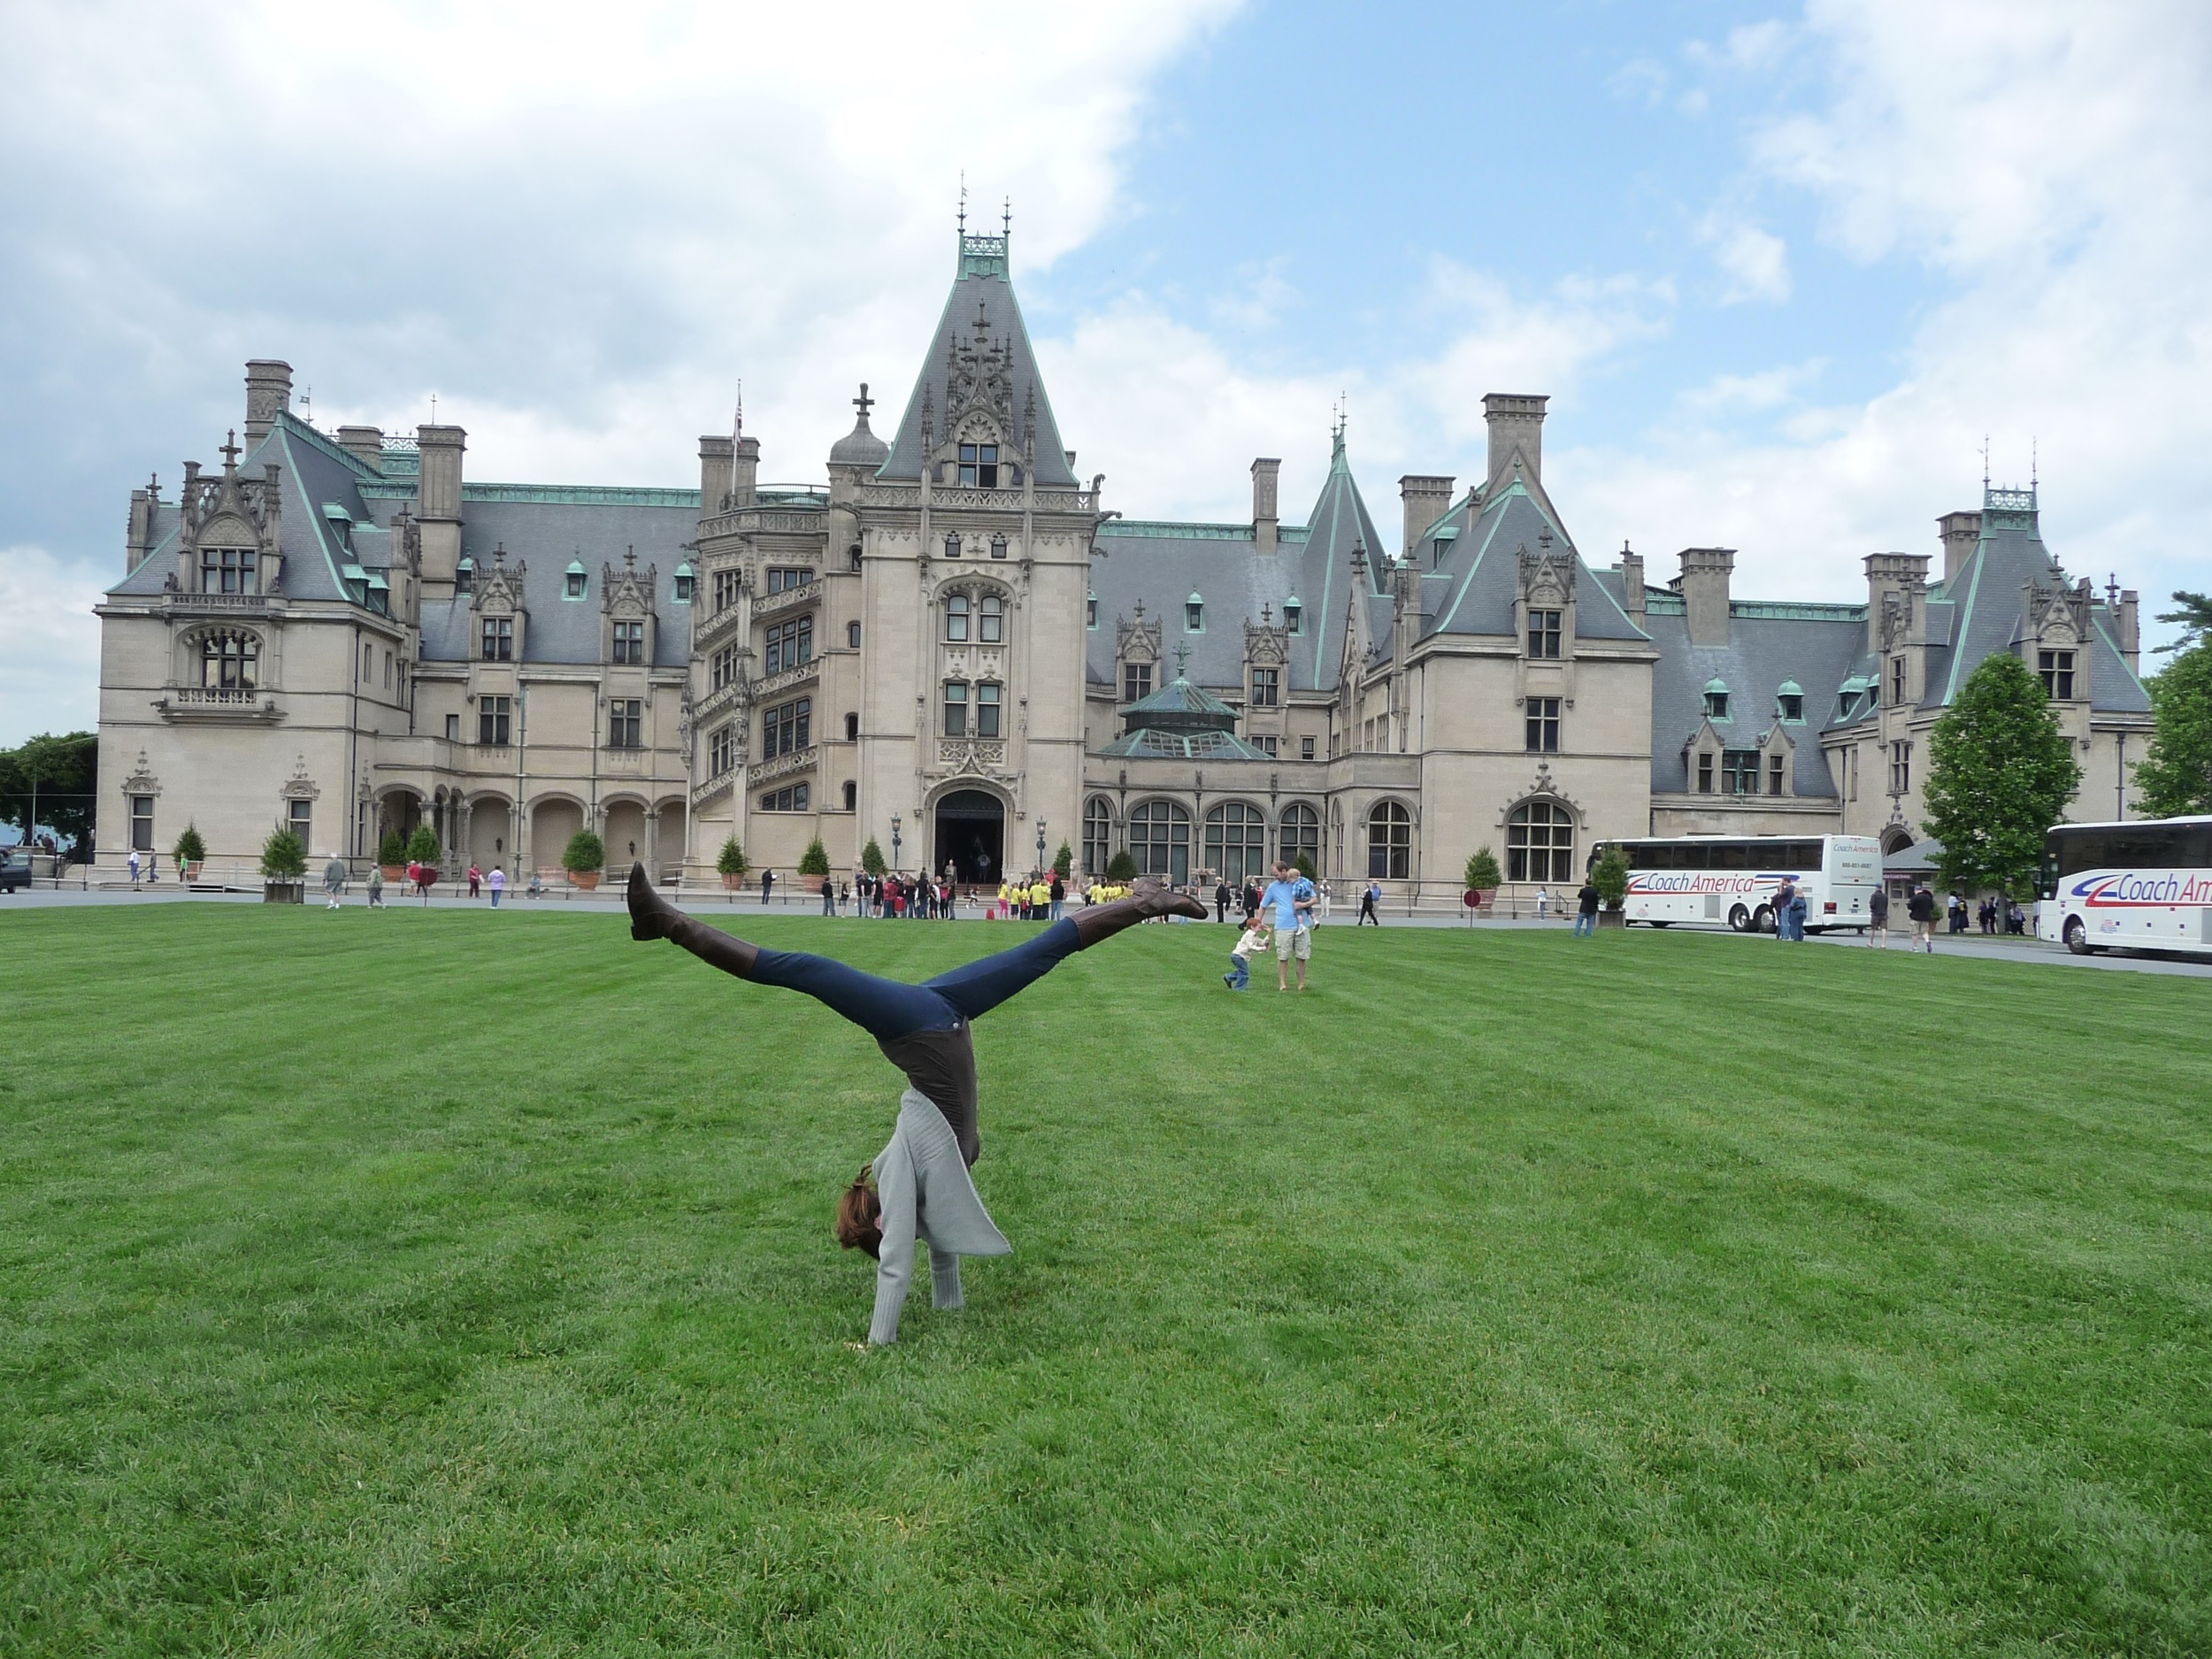 The Biltmore, North Carolina